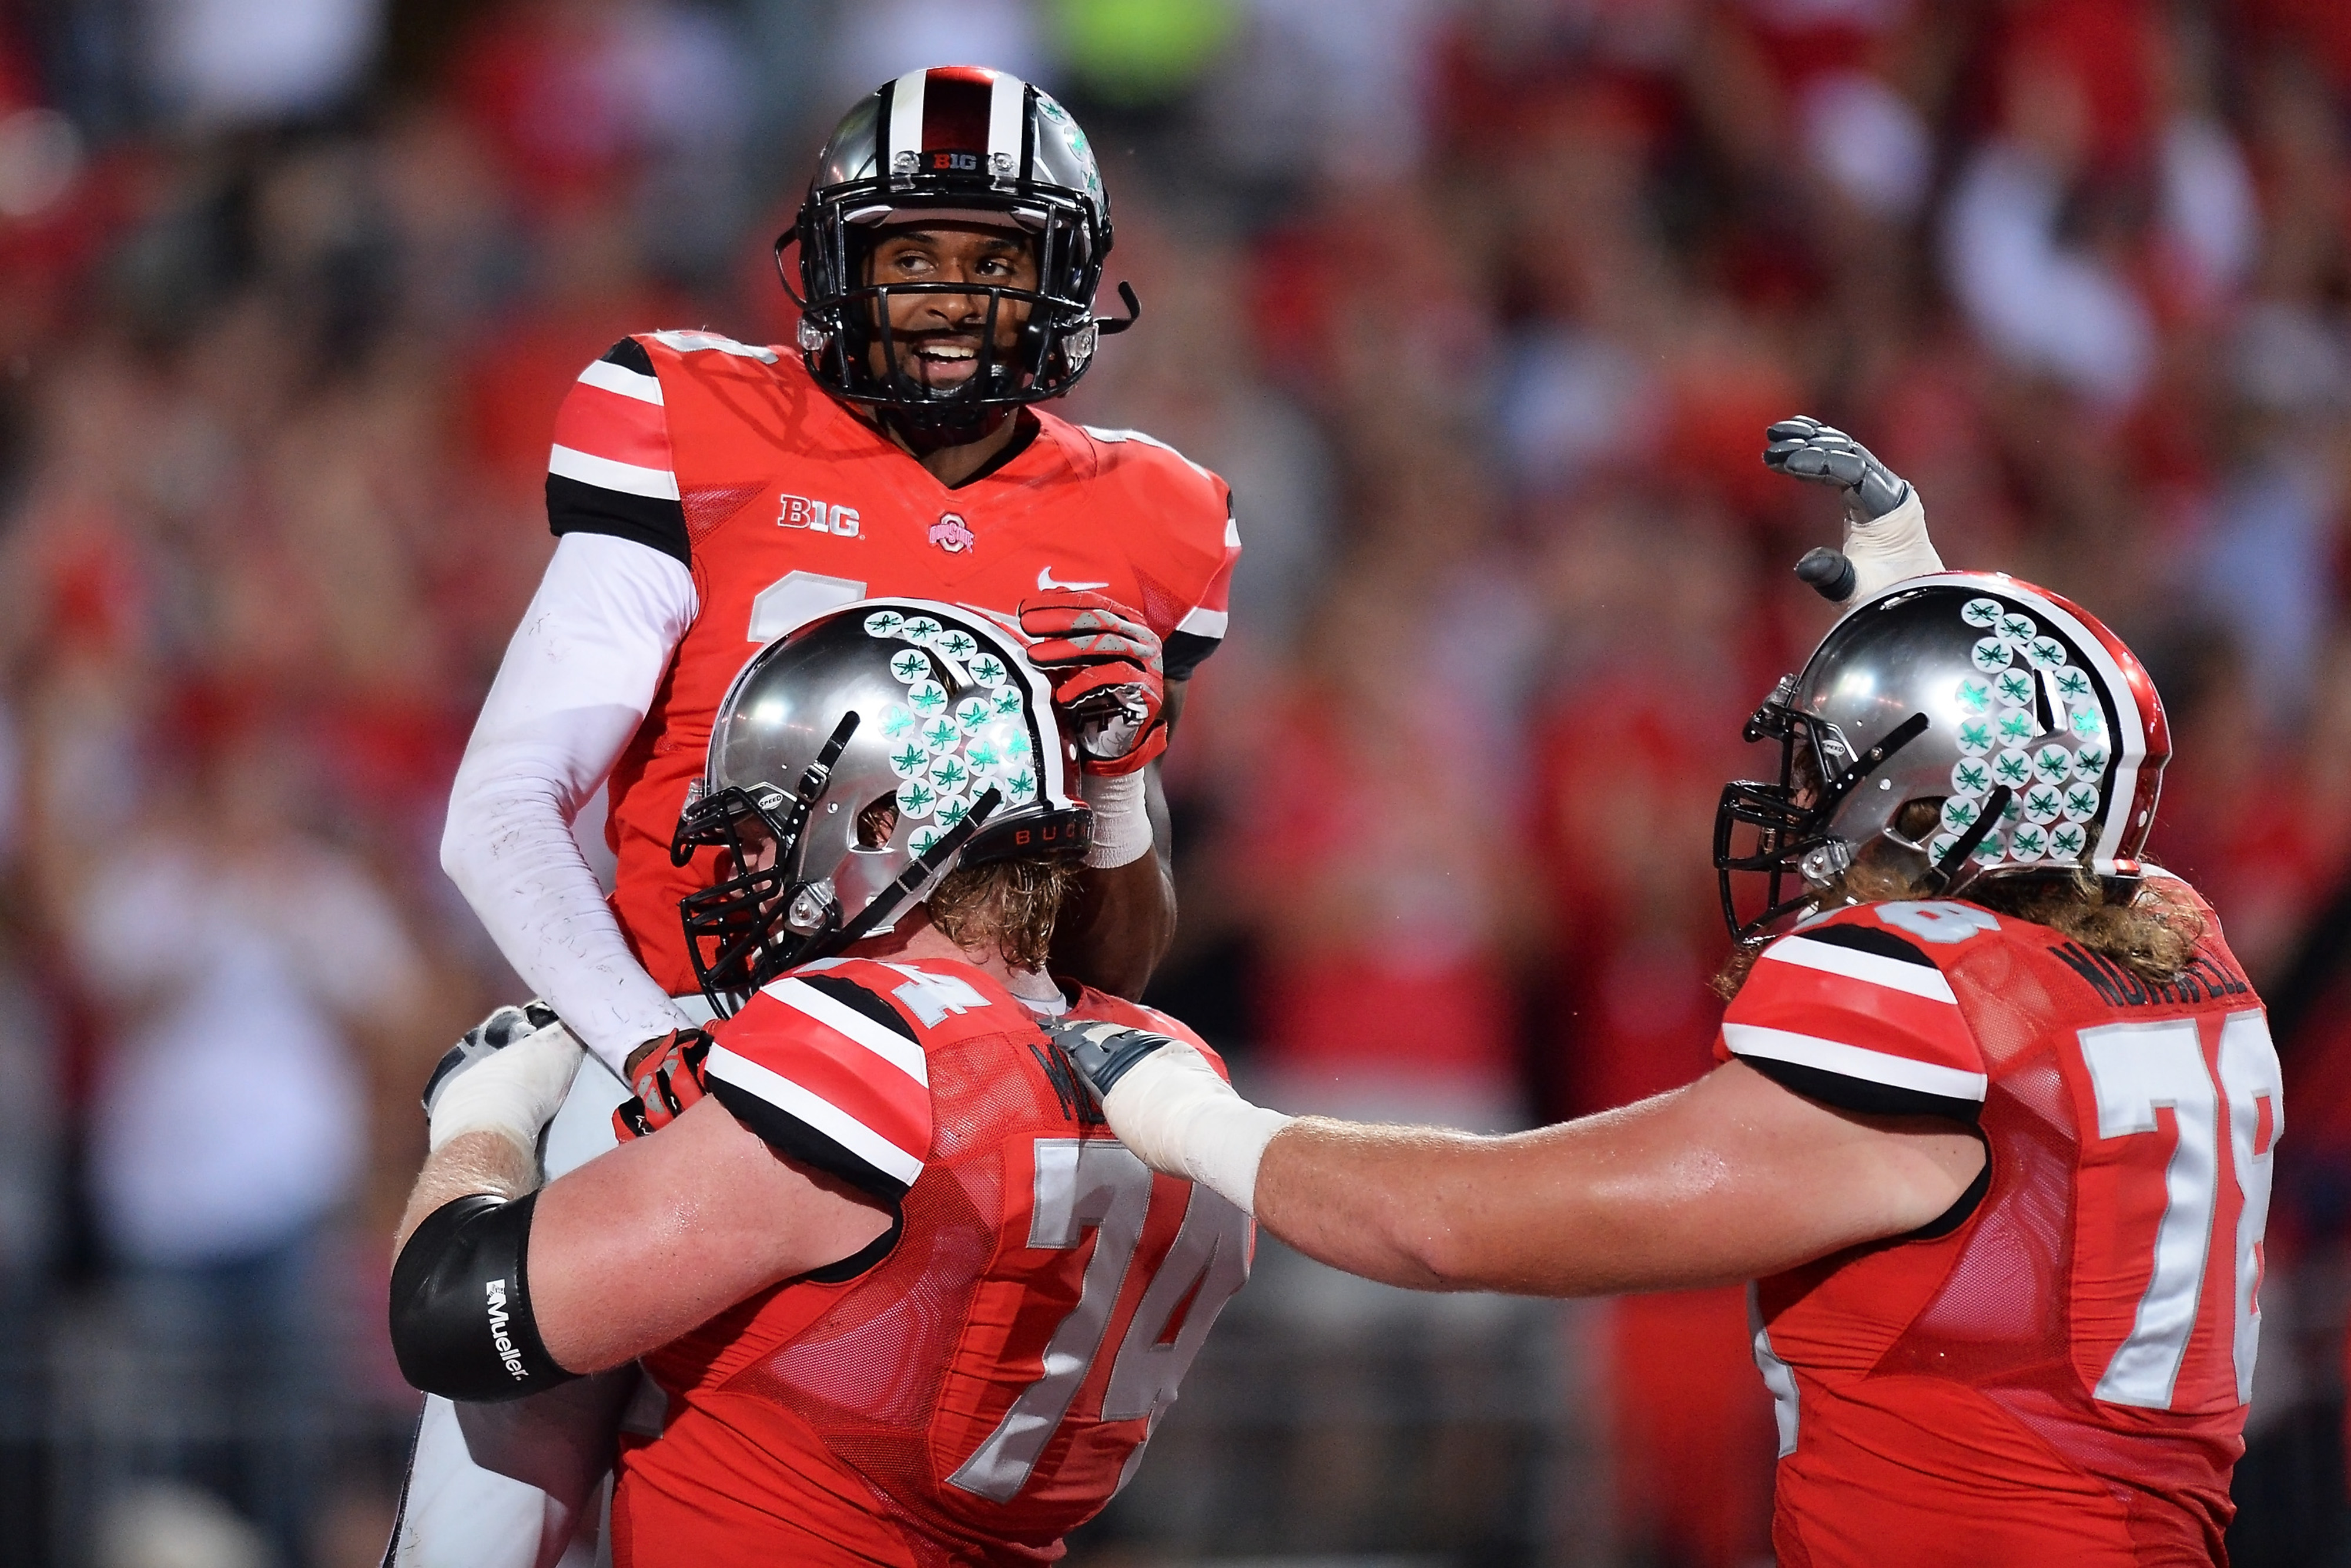 Wisconsin vs. Ohio State final score: Miller returns, leads Buckeyes to big win